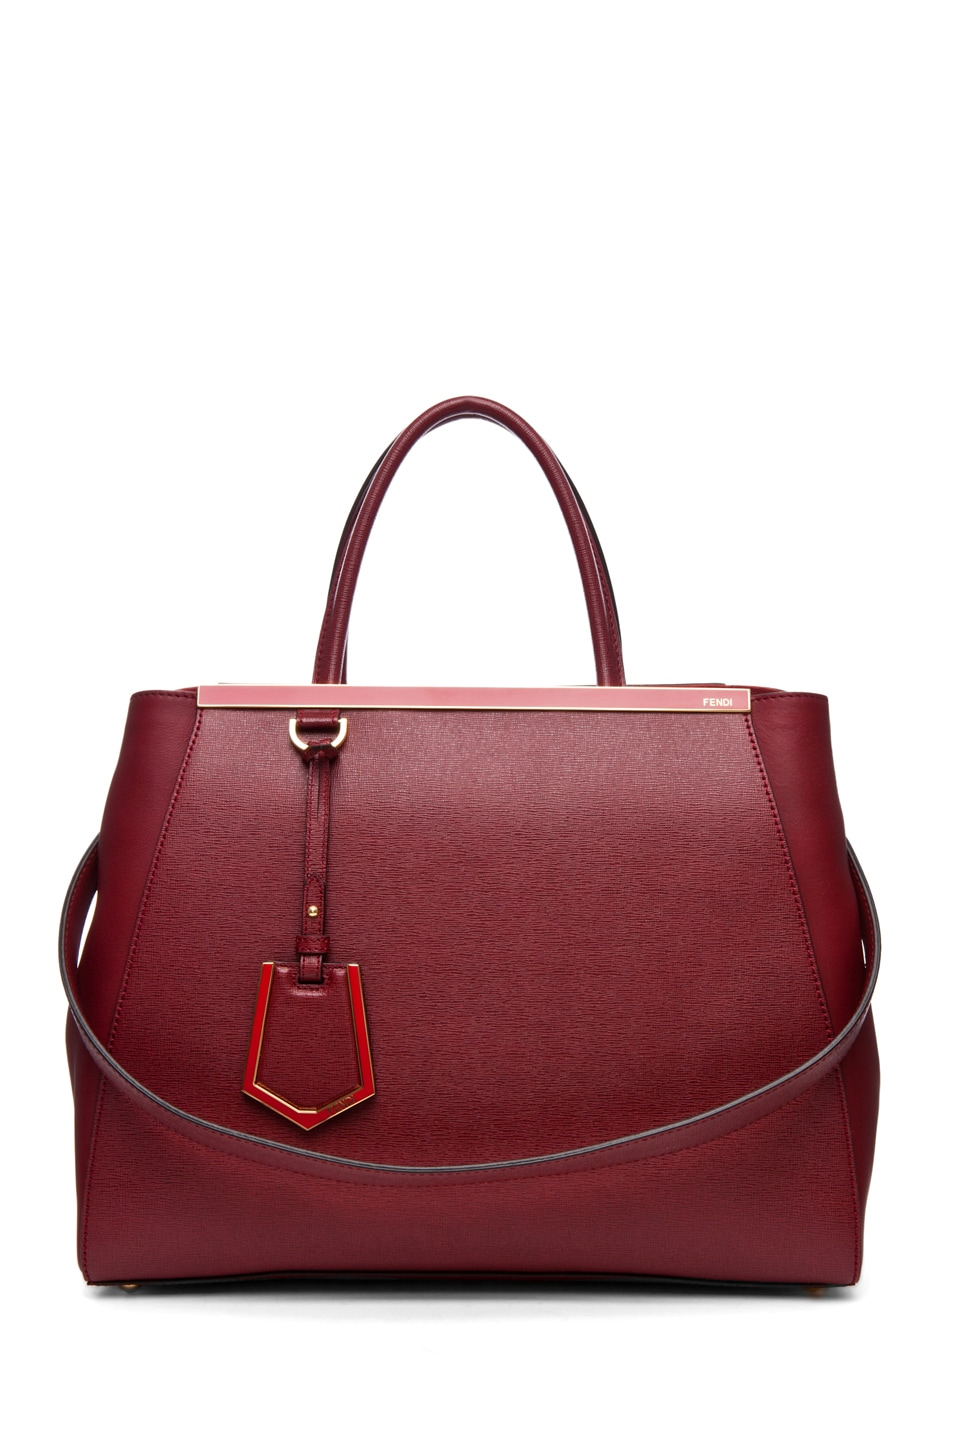 Image 1 of Fendi Medium Shopper Bag in Dark Cherry